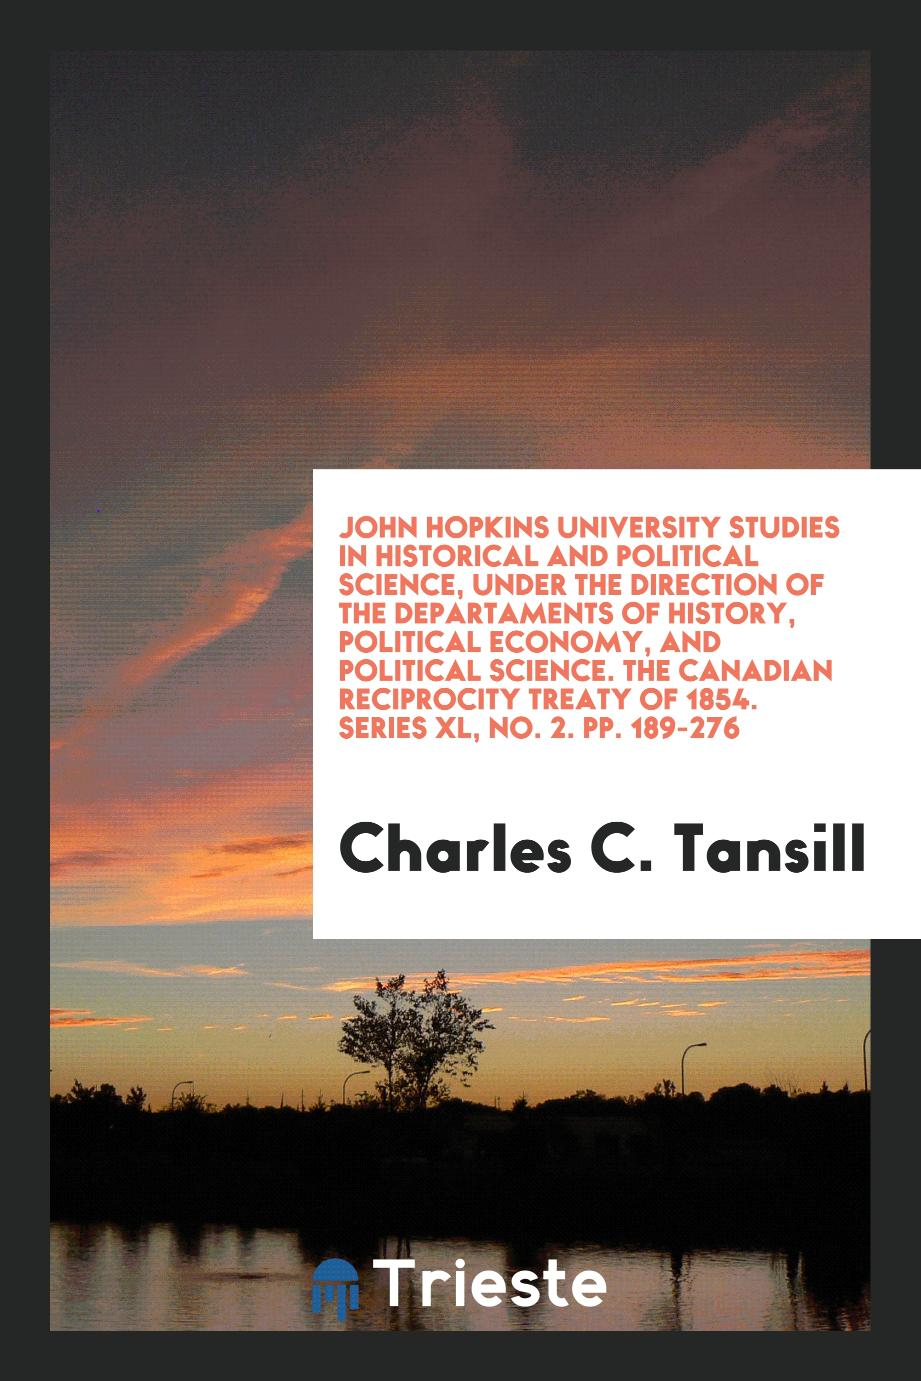 John Hopkins University Studies in Historical and Political Science, under the Direction of the Departaments of History, Political Economy, and Political Science. The Canadian reciprocity treaty of 1854. Series XL, No. 2. pp. 189-276